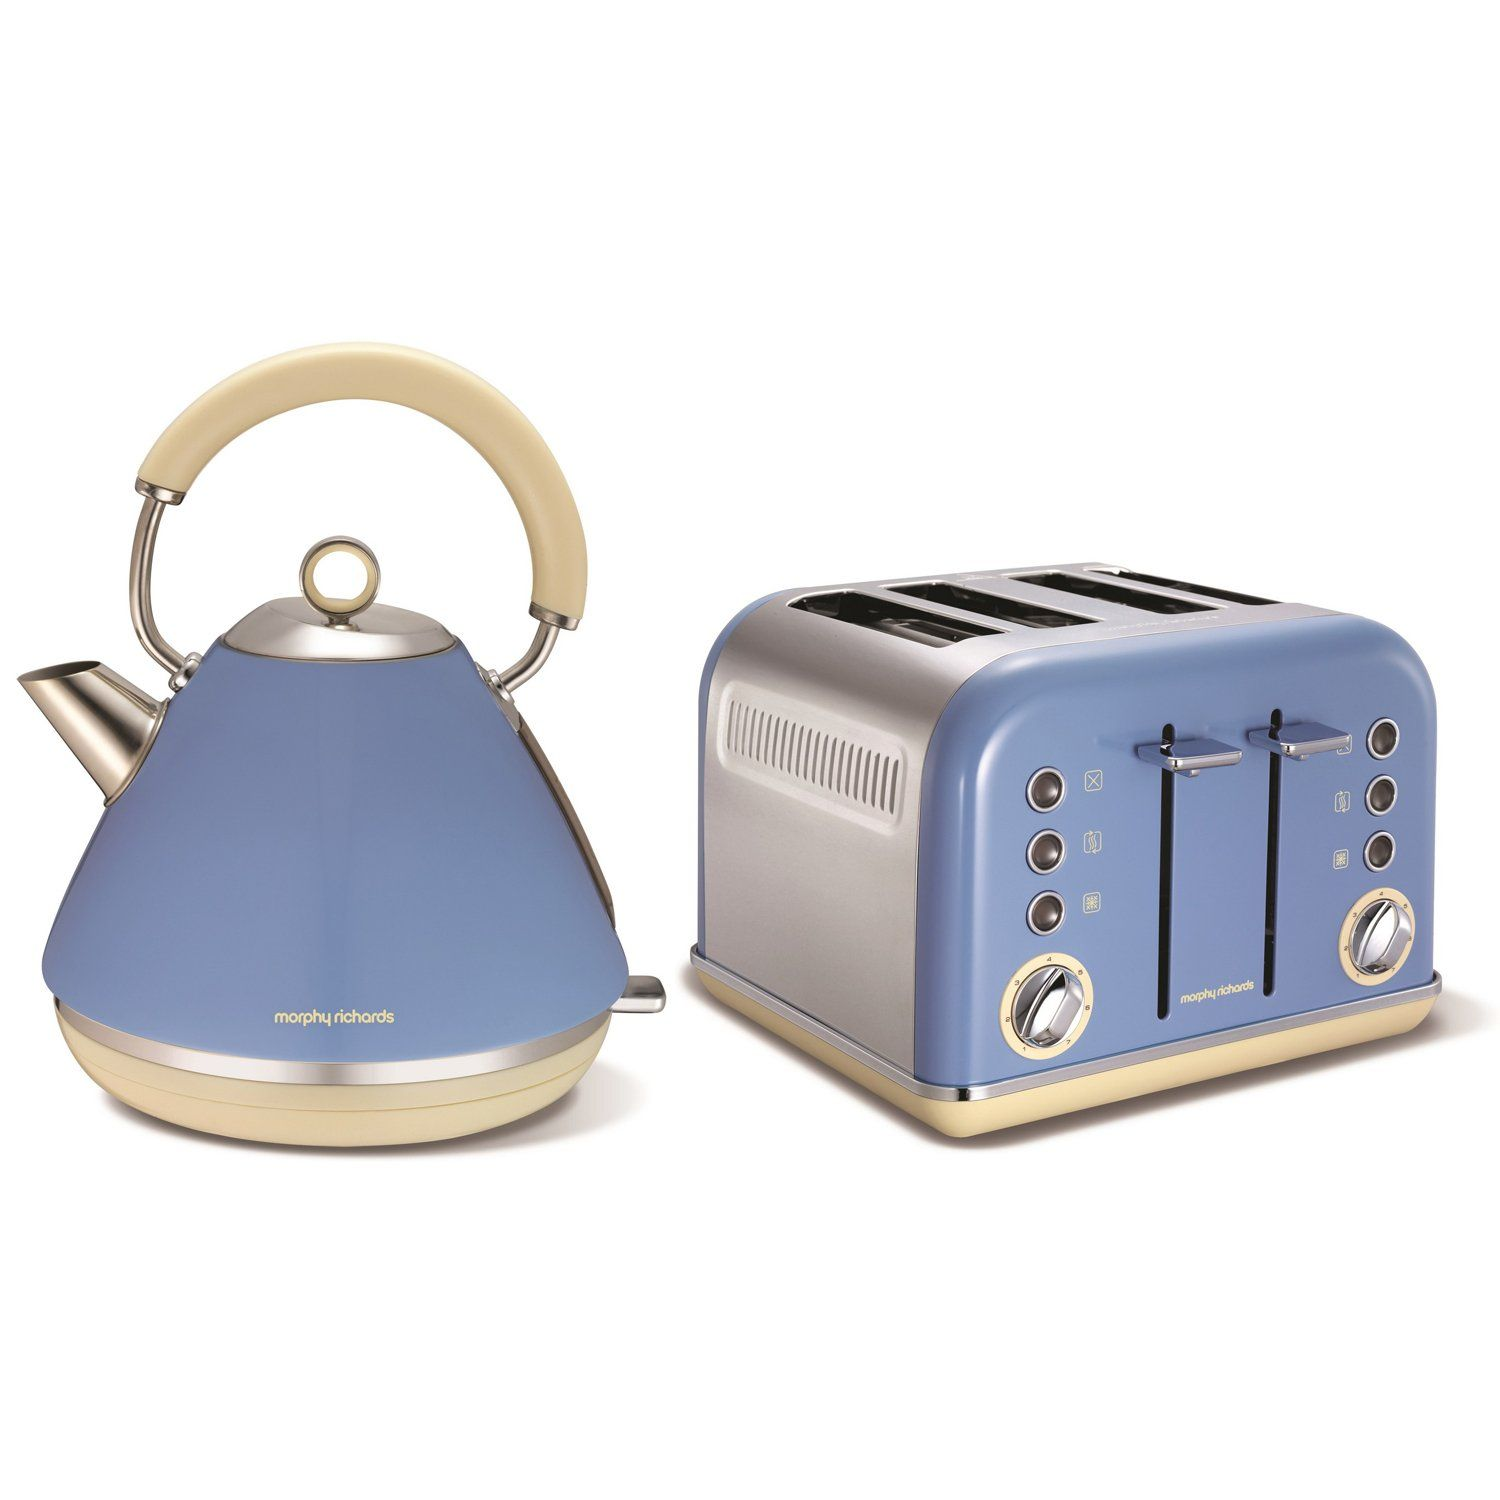 Morphy Richards Uk: MORPHY RICHARDS ACCENTS BLUE STAINLESS STEEL KETTLE JUG